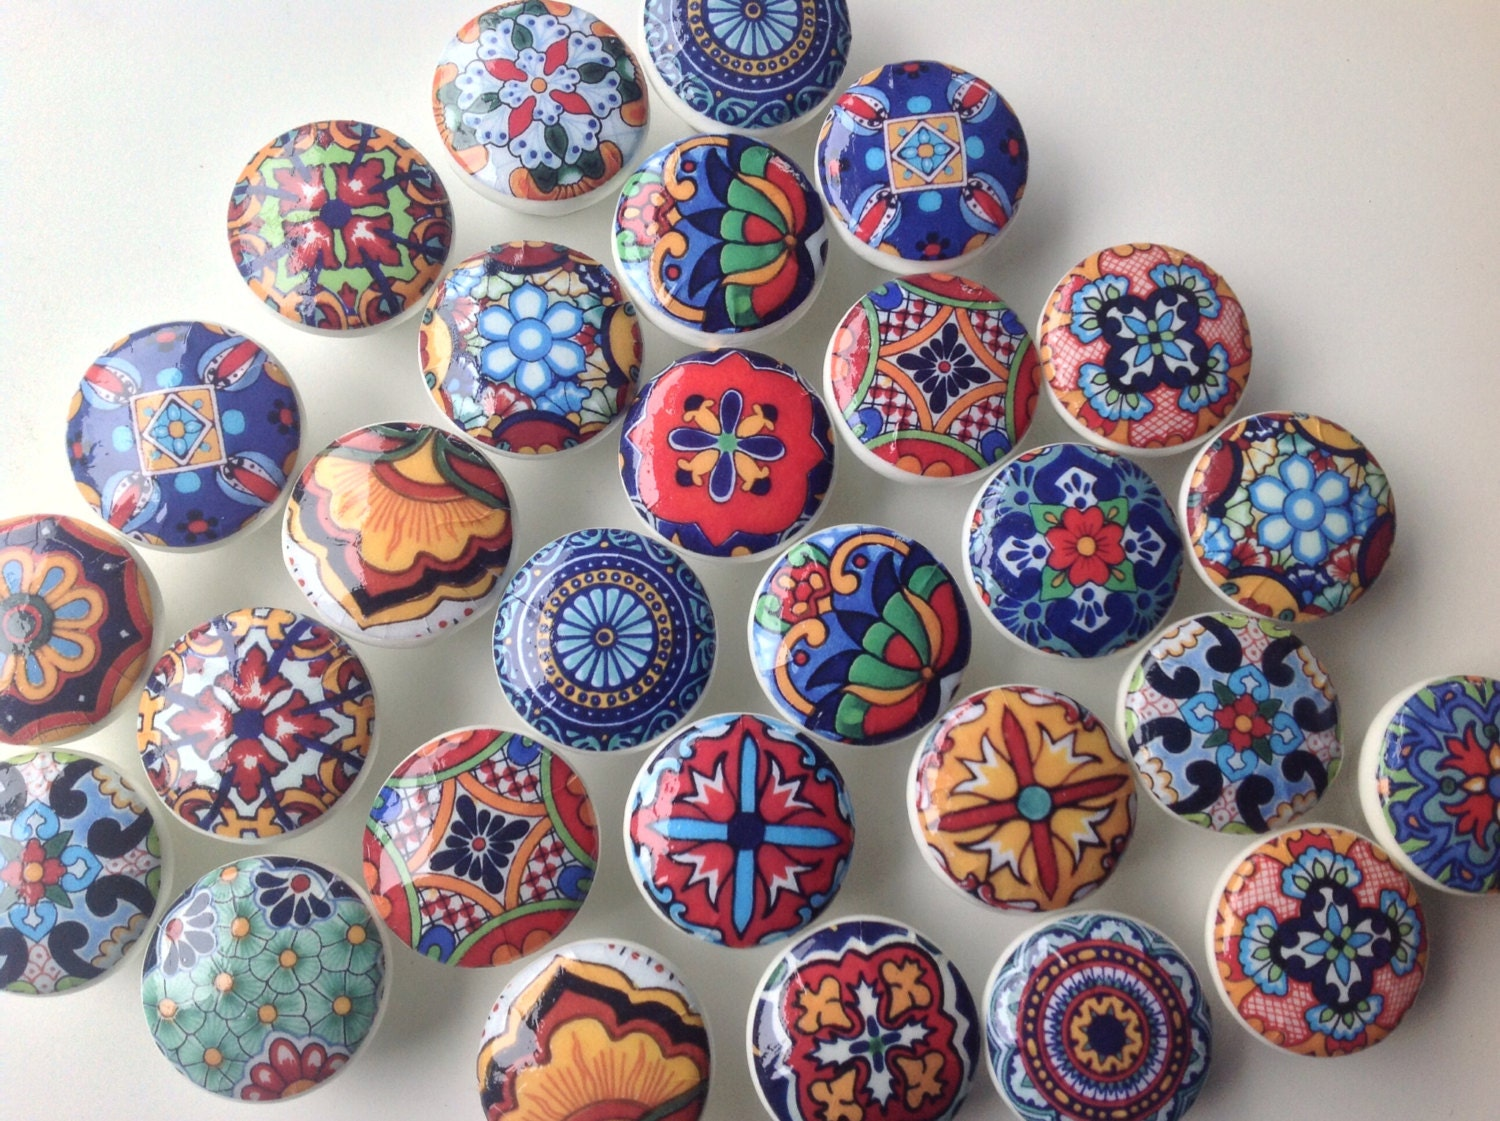 6 Wooden Drawer Knobs Talavera Design Hand Decorated